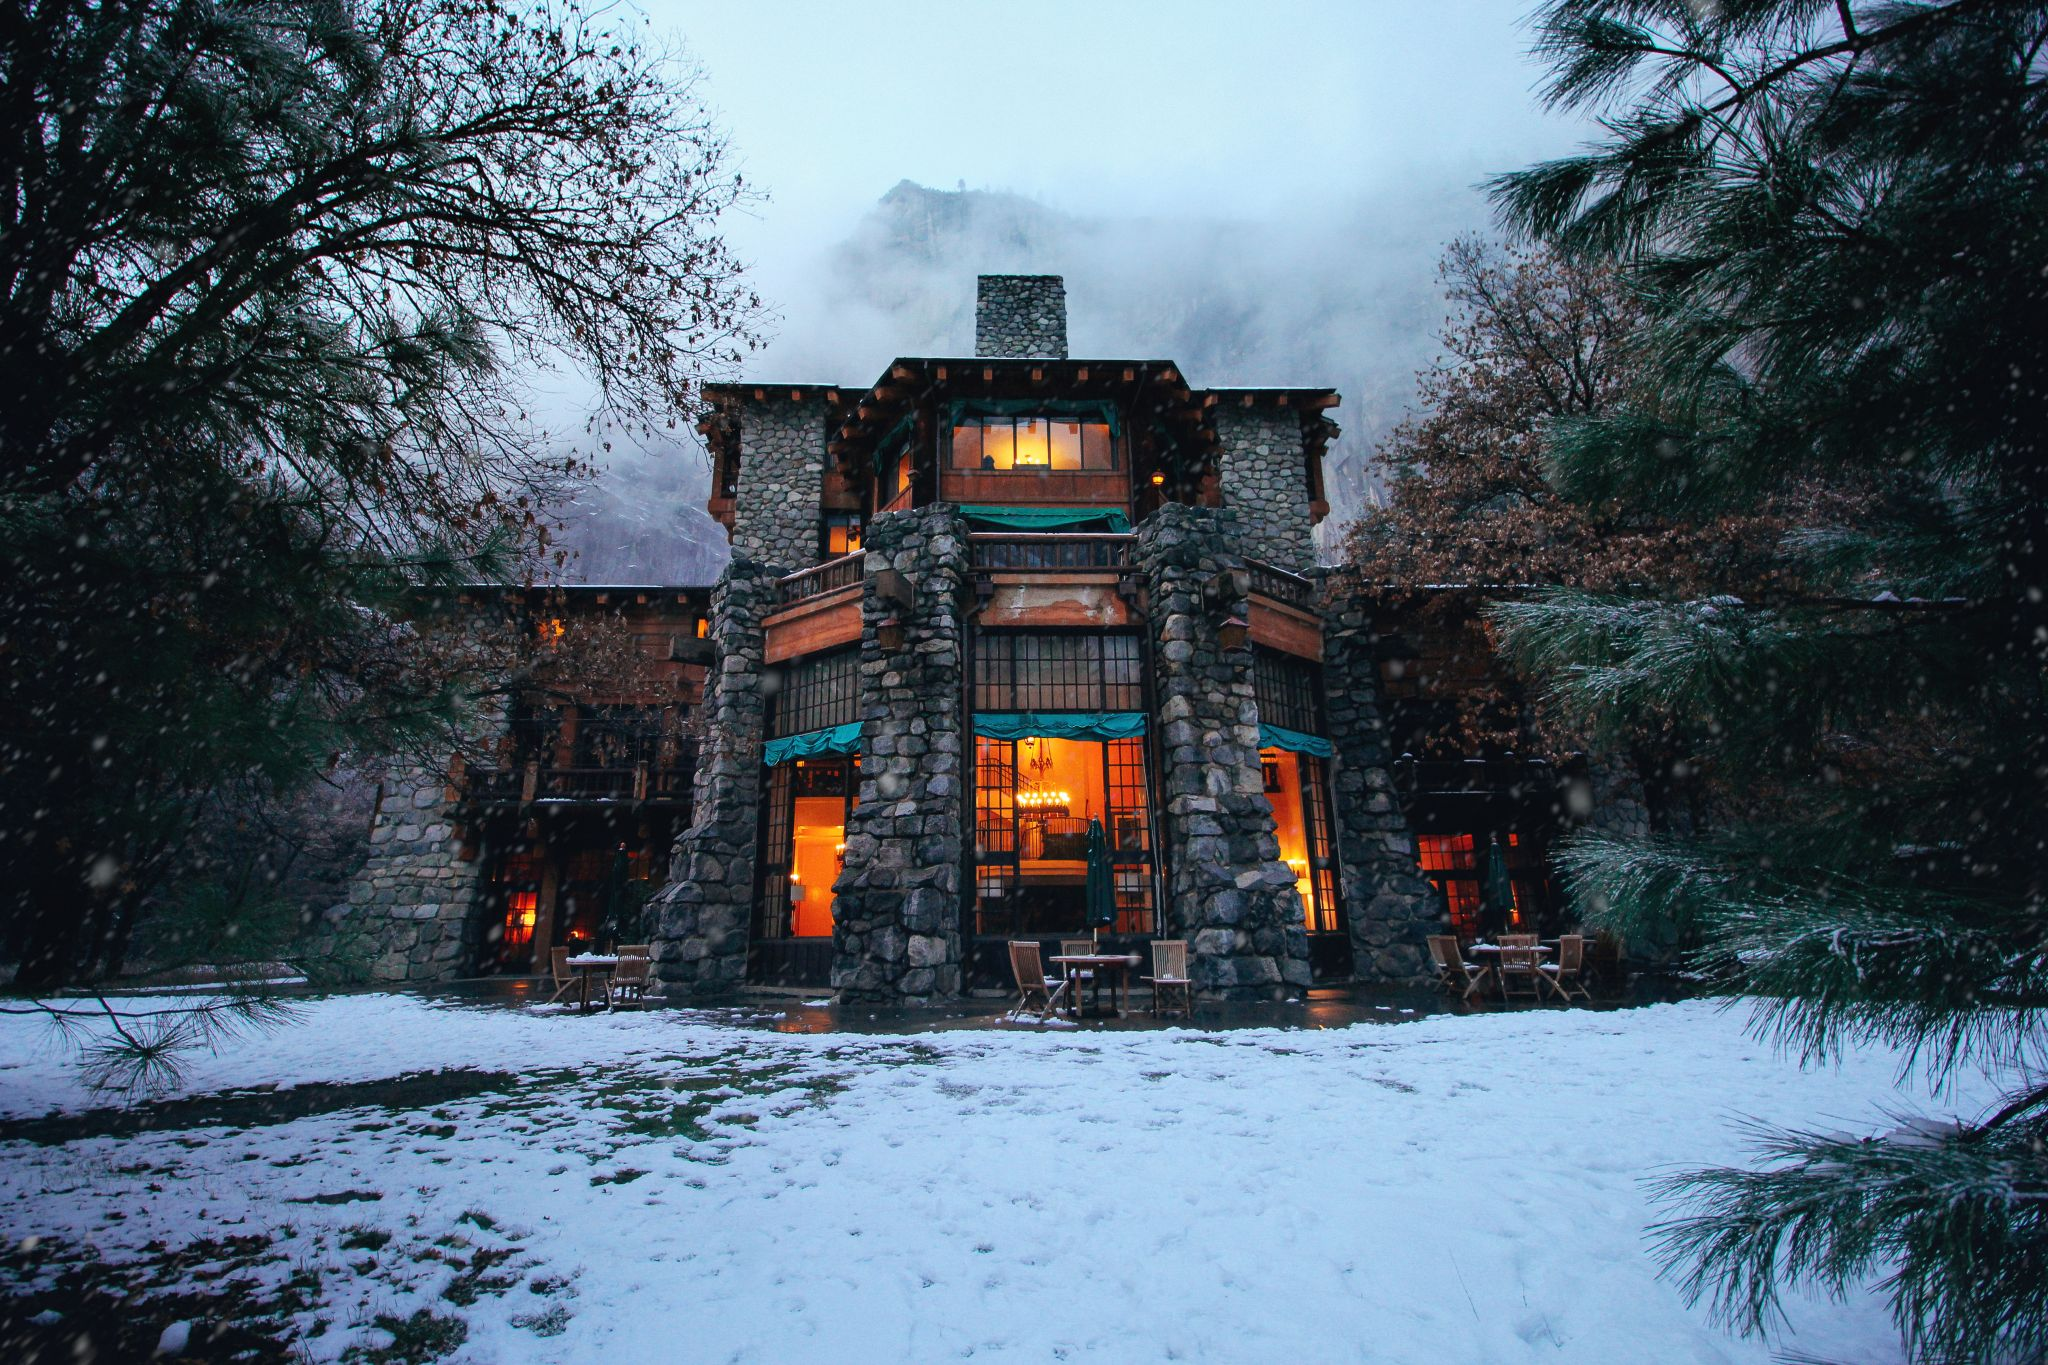 Yosemite S Ahwahnee Hosted Massive Thanksgiving Feast Unmasked Guests Had Workers Appalled